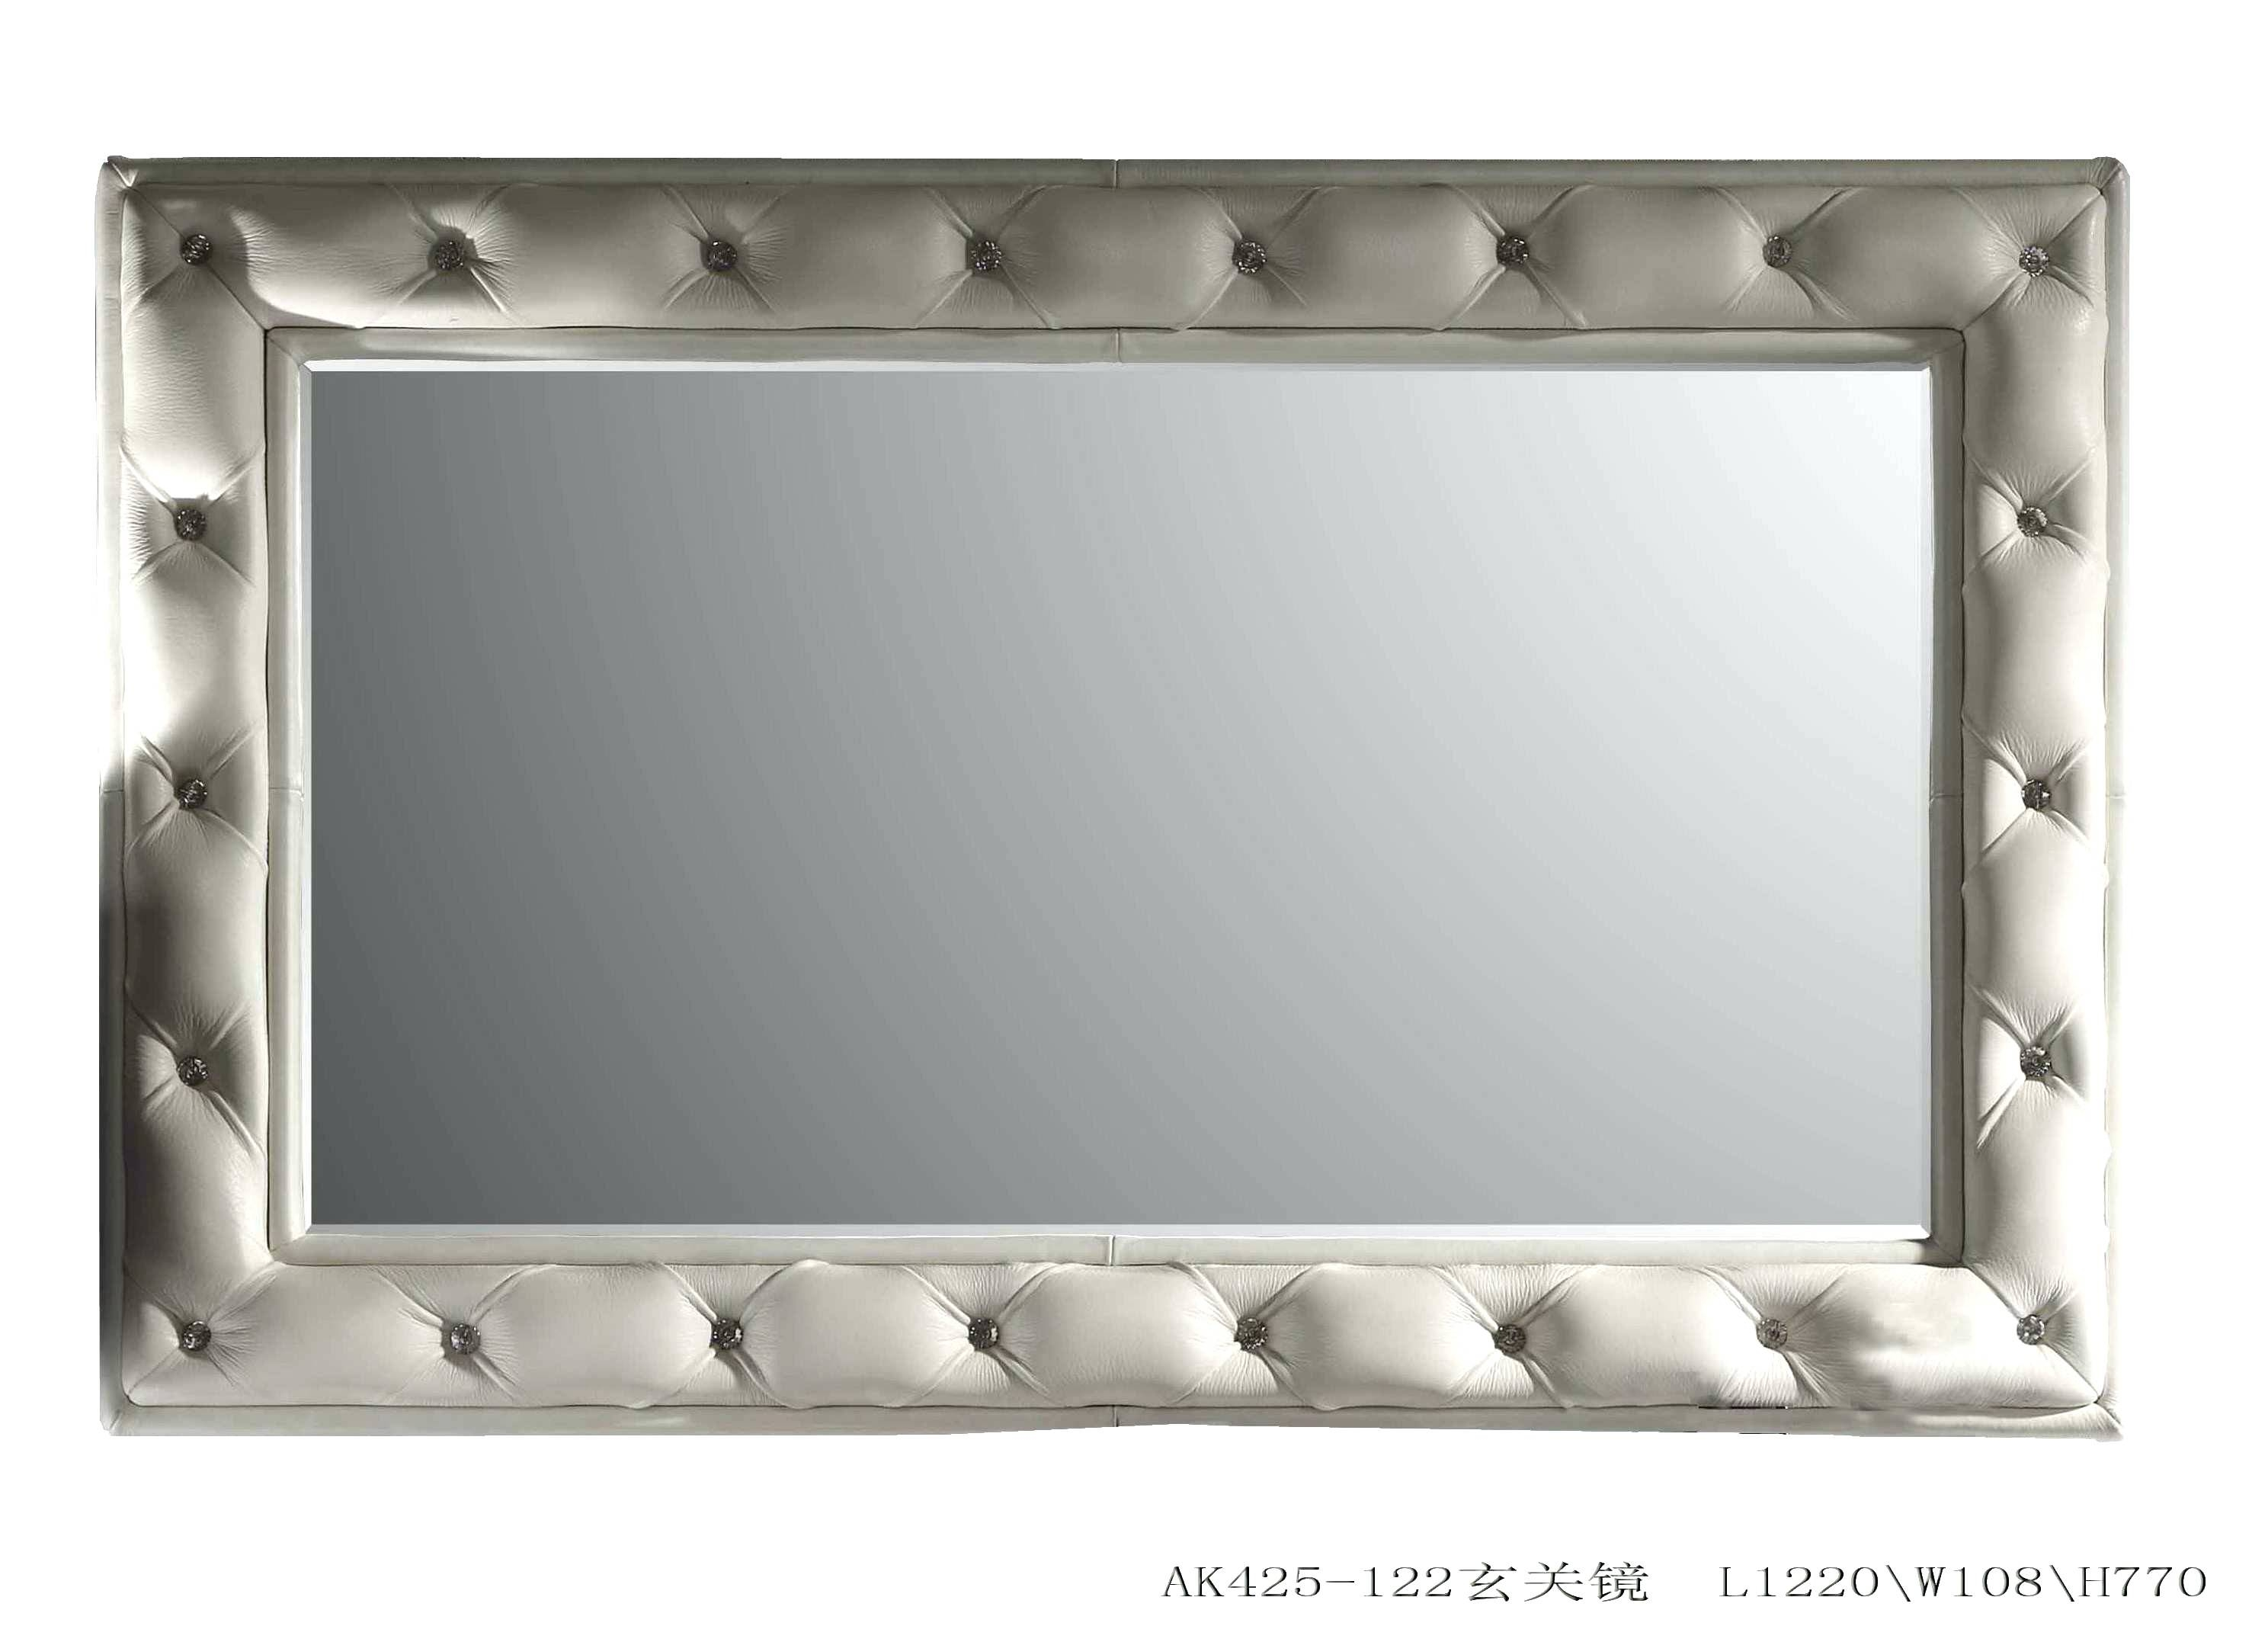 Wall Mirrors ~ Leather Wall Mirror Sale Leather Framed Mirrors Uk Inside Black Leather Framed Mirrors (View 11 of 15)